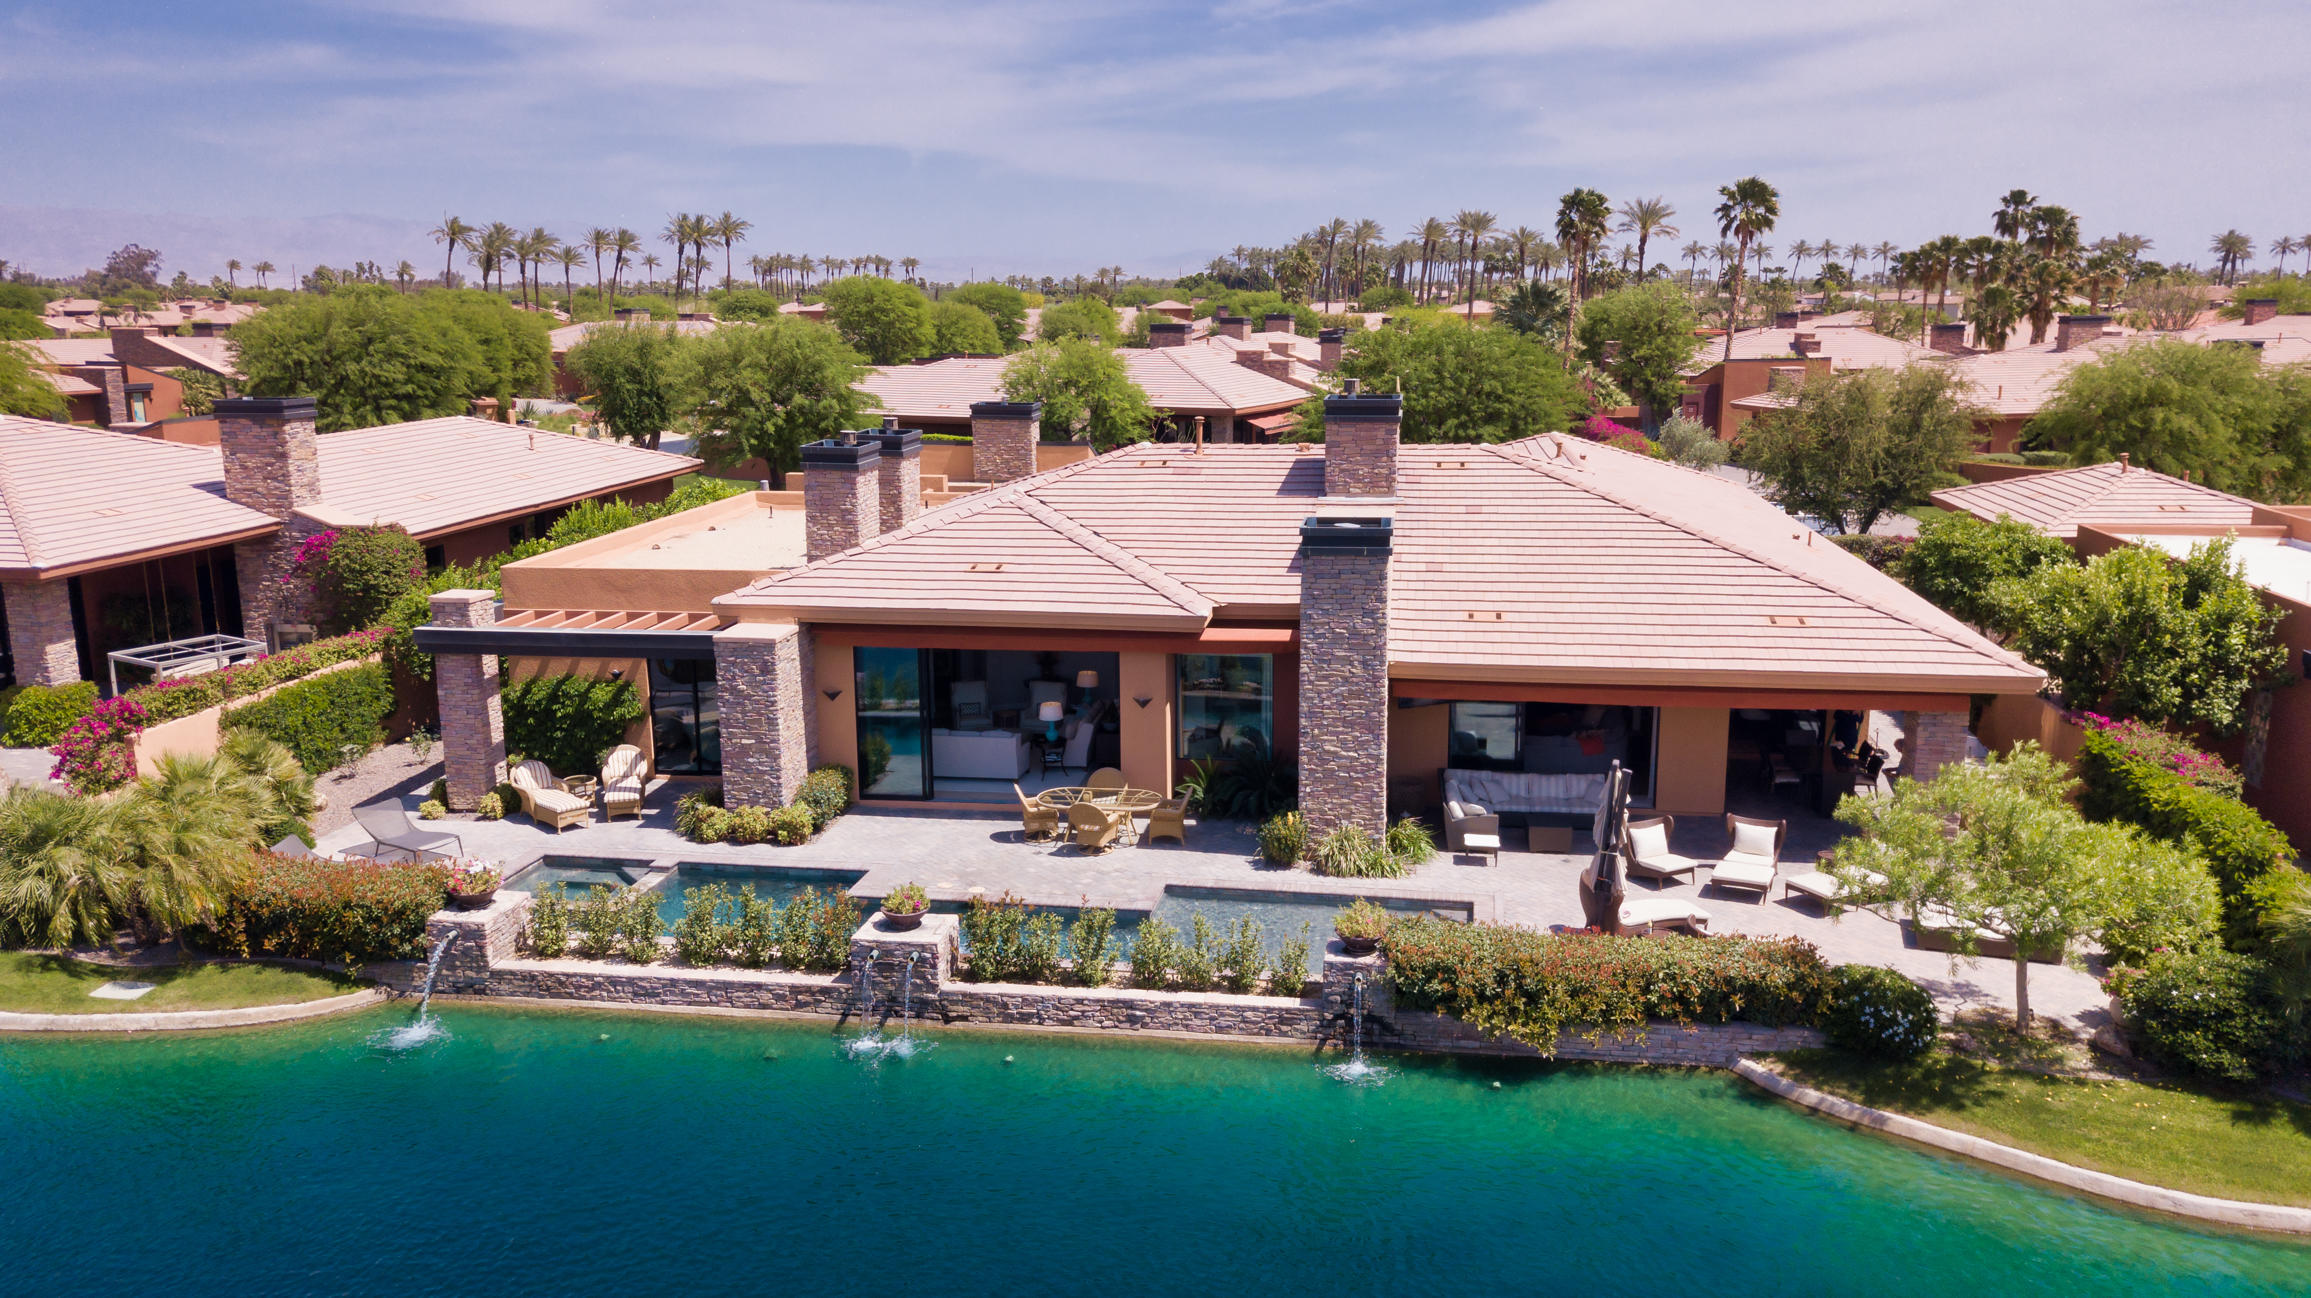 This unique luxurious Ironwood gem is move-in ready! Largest model in 24 hour live gated community with views of lakes and mountains!  Remodeled with  custom artisian wood floor planks.  Goumet kitchen includes Wolf stove top with grill, Wolf microwave with Sub Zero refrigerator, built-in wall ovens.  Two drawer below counter refrigeration, trash compactor all hidden under gorgeous granite counter. Built-in seating area off the kitchen. Niles surround sound throughout, google lighting controls, alarm system and more. The wet bar with 2 pour kegarator, ice maker, Perlick refrigeration will begin the party. Step outside from the Master bedroom into the spa and swimming pool.  5 custom fireplaces in this home. Fireplace in master & outside. Master bath includes marble shower and floors, steam in shower, jet tub, TV insert in mirror. Operation for controls of the house in master as well. Dining room & additional bedrooms tastefully decorated with same type decor. Casita has its own 2 sided fireplace, microwave, ice maker, refrigerator/freezer, & TV. Enjoy barbecuing on your built-in stainless steel BBQ with bar sink. Bask in the salt water swimming pool/spa with waterfalls while watching the game on outside TV. Airconditioning in garage and golf cart garage with finished floor and extra cabinetry. This show stopper home is located among lakes and hand trimmed gardens. Complete resort luxury living! Furnishings offered outside of escrow if interested.